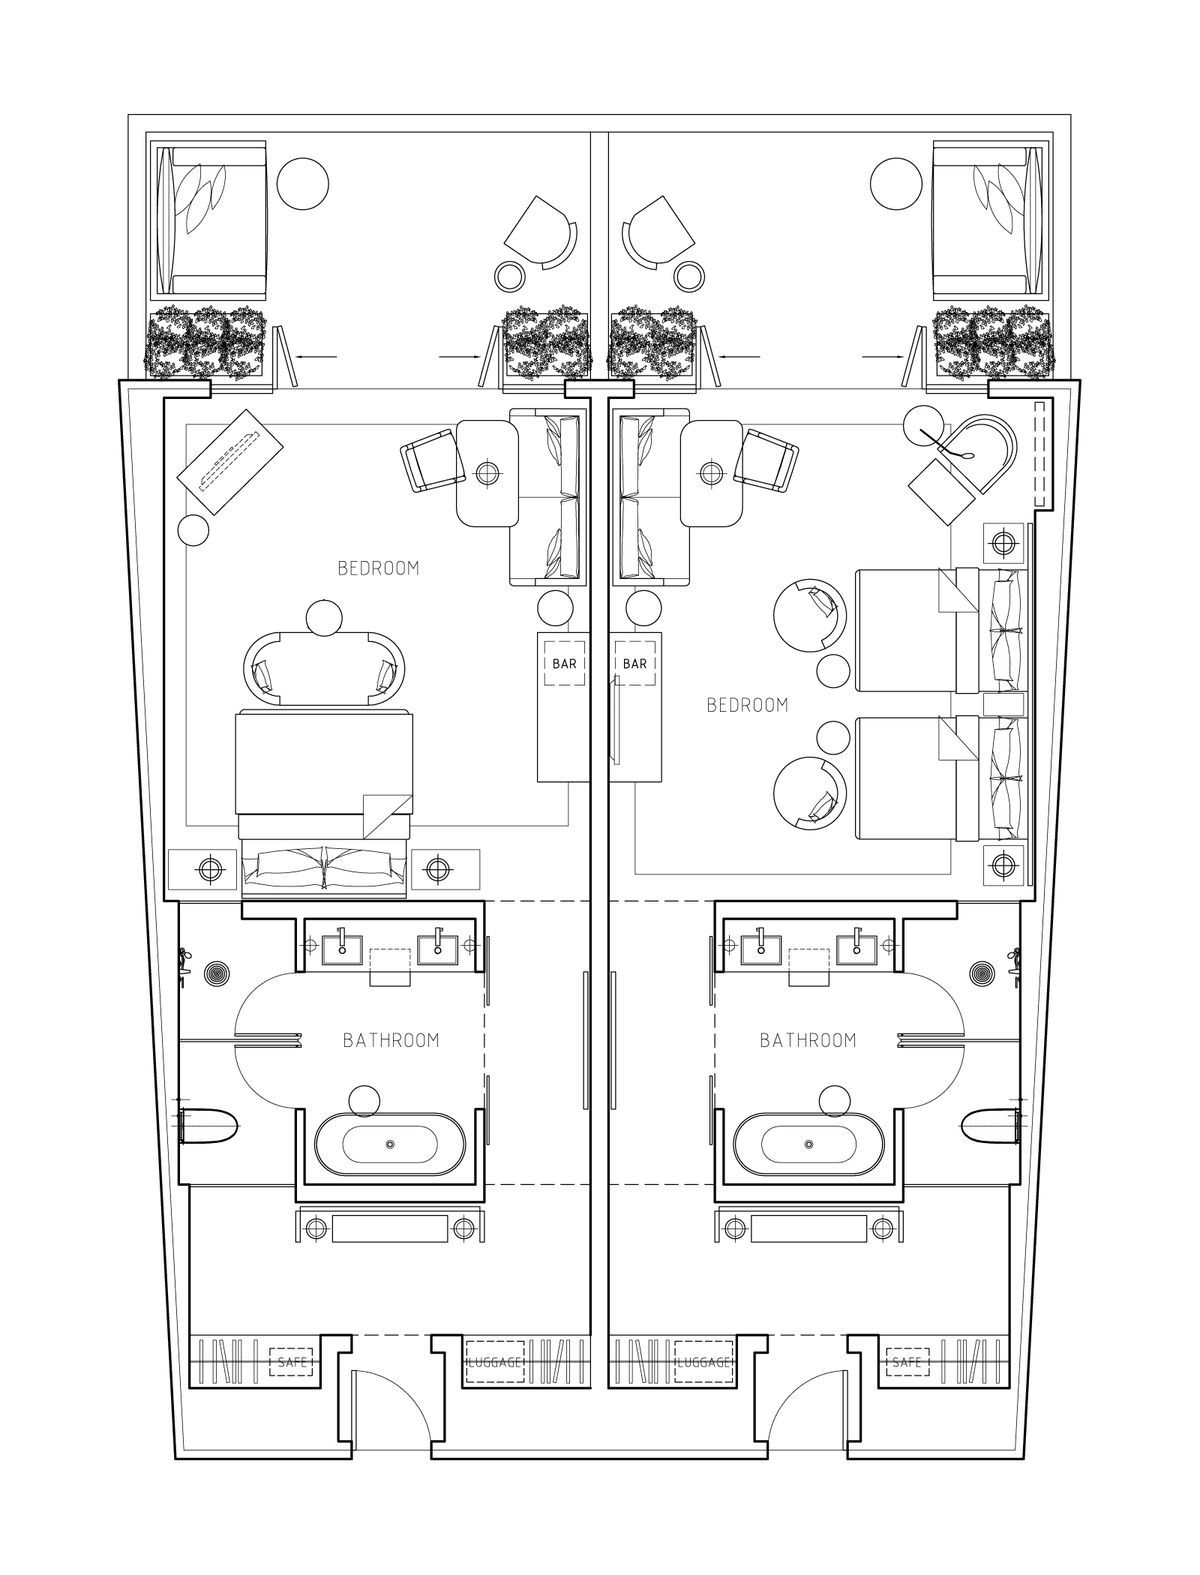 Pin By Pop Tiramongkol On Space Planing Layout In